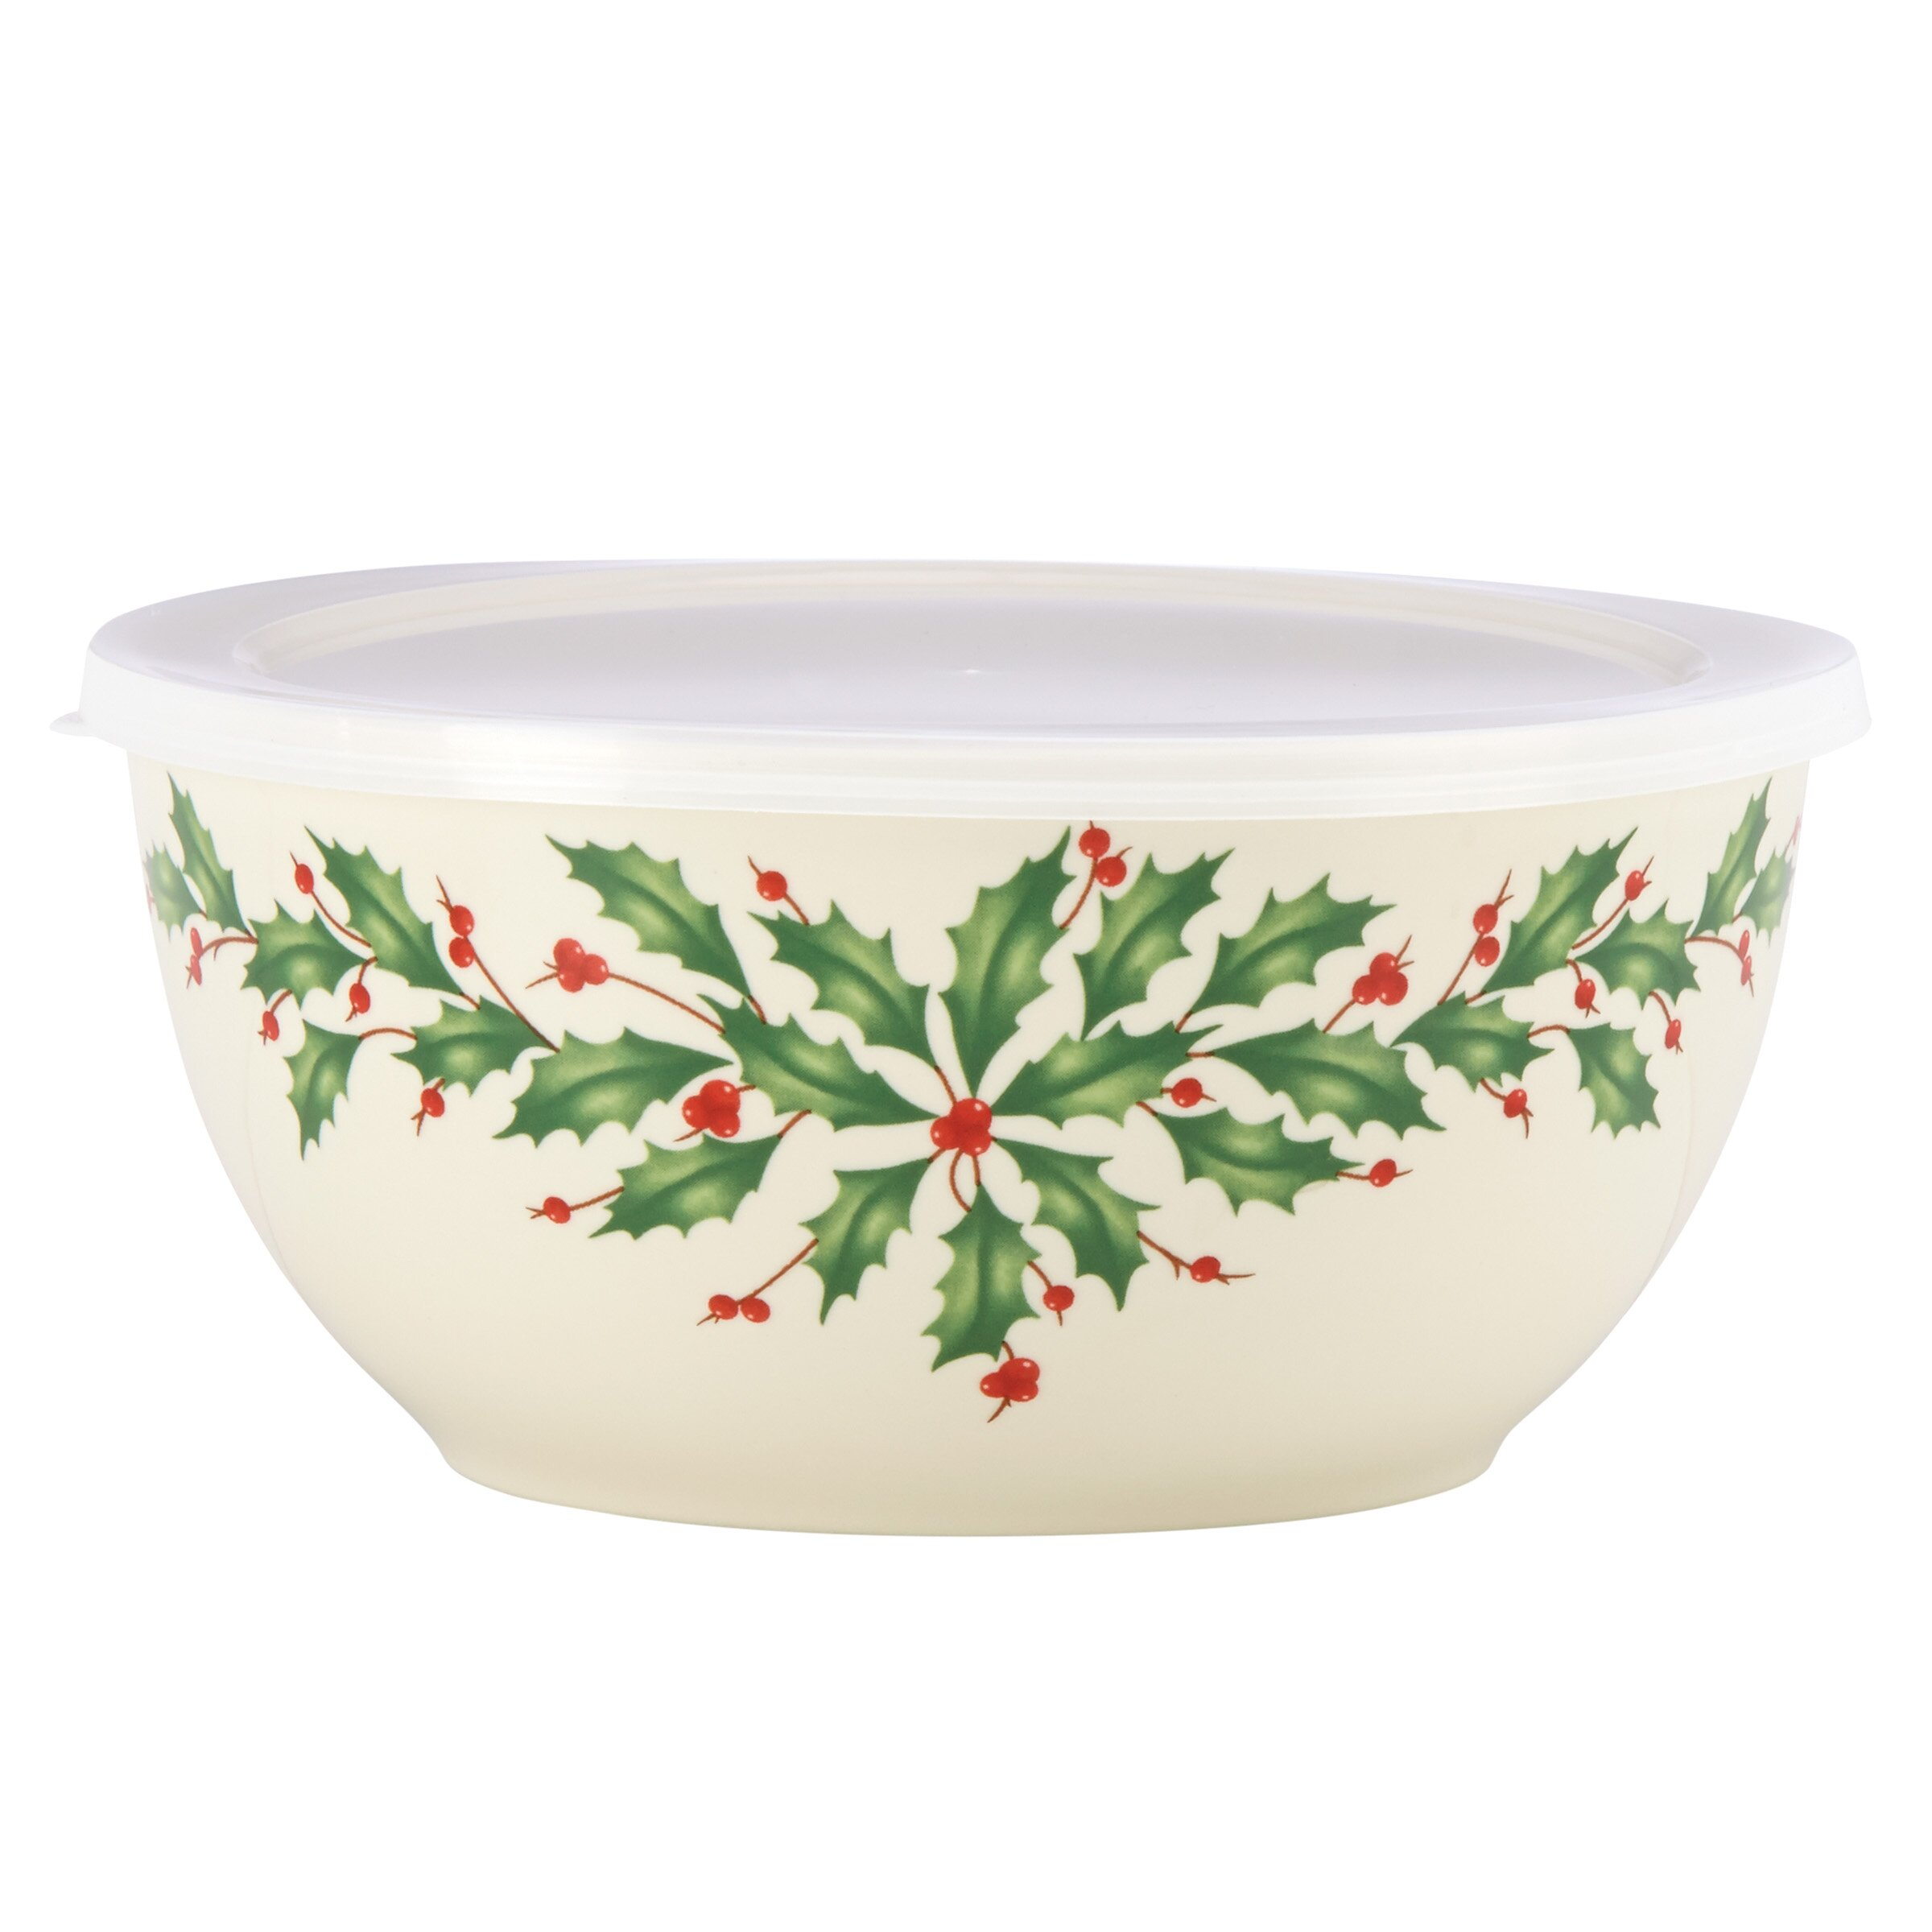 lenox holiday serving bowl with lid reviews wayfair. Black Bedroom Furniture Sets. Home Design Ideas